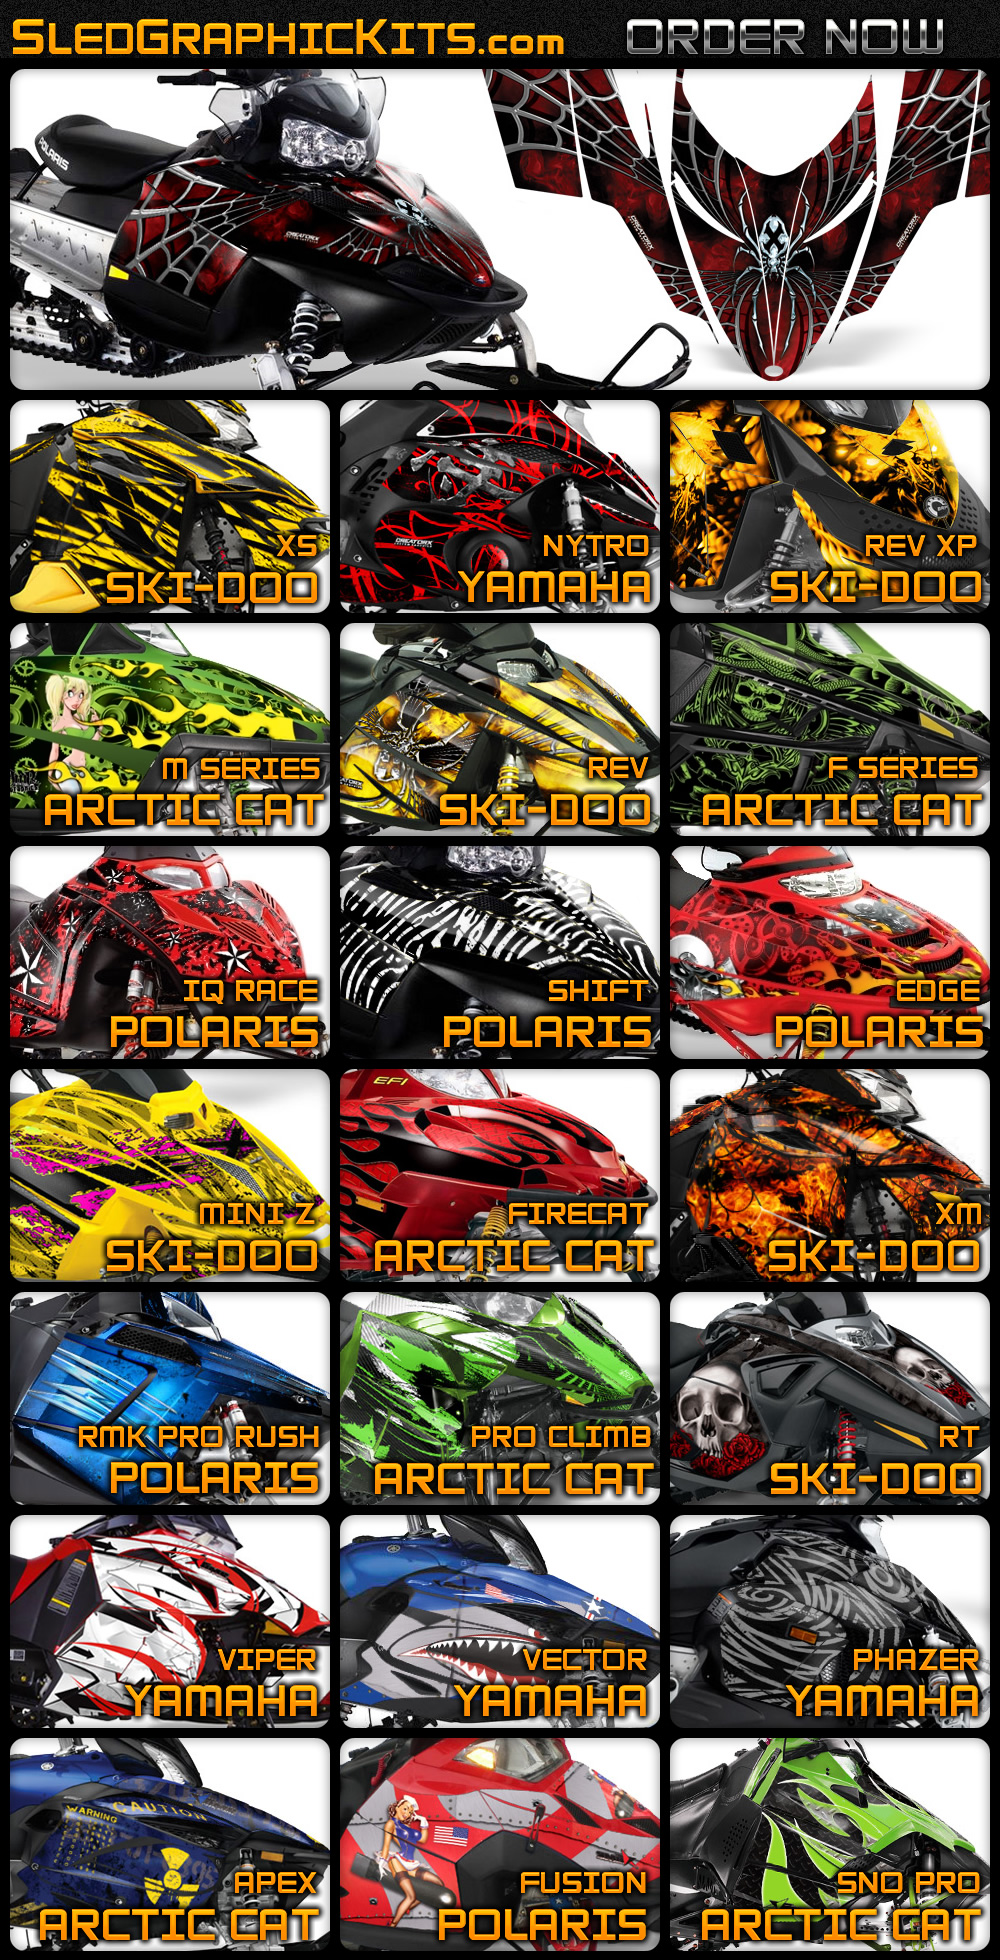 Yamaha Sled Wraps >> Snowmobile Graphic Kits - Sled Graphics - Sled Wraps - Custom Snowmobile Graphics - Ski-Doo ...